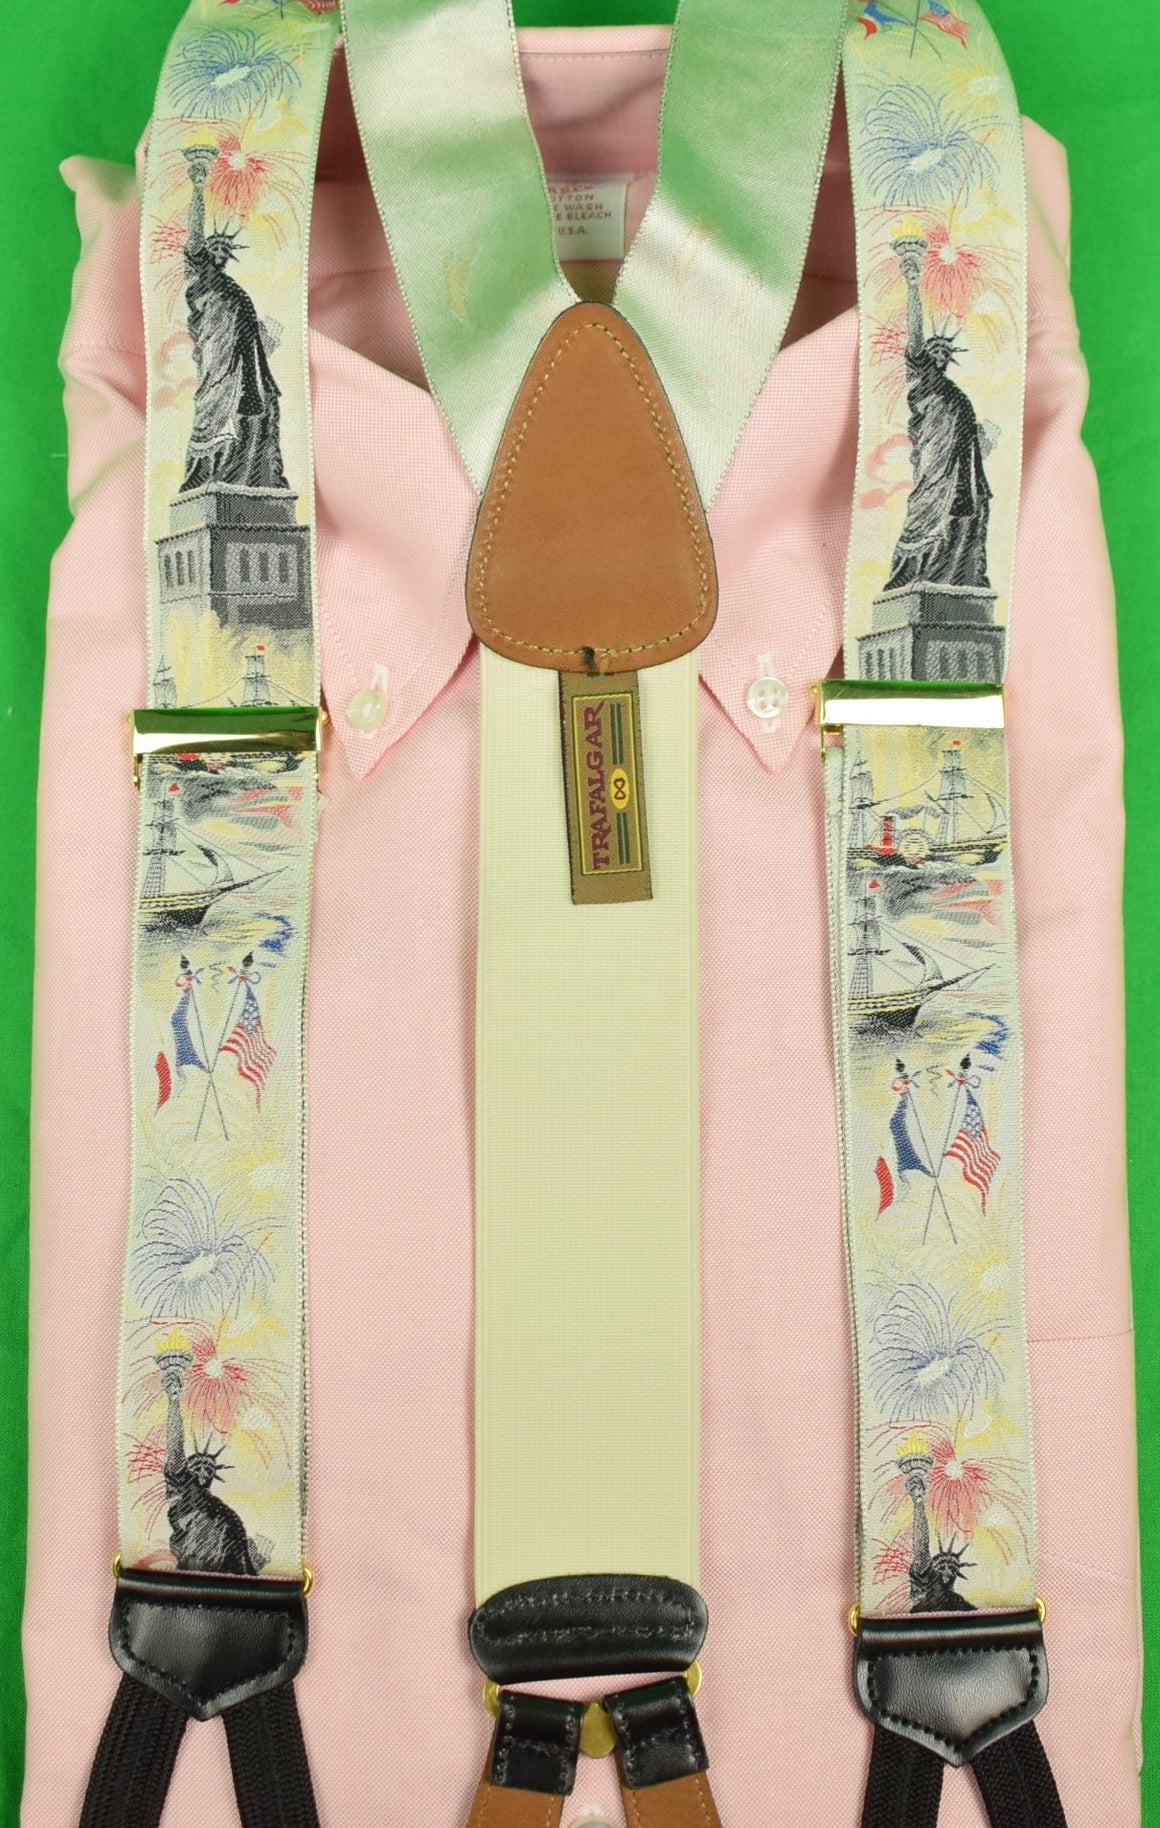 Trafalgar Statue of Liberty Silk Braces New/Old Stock! (Sold!)